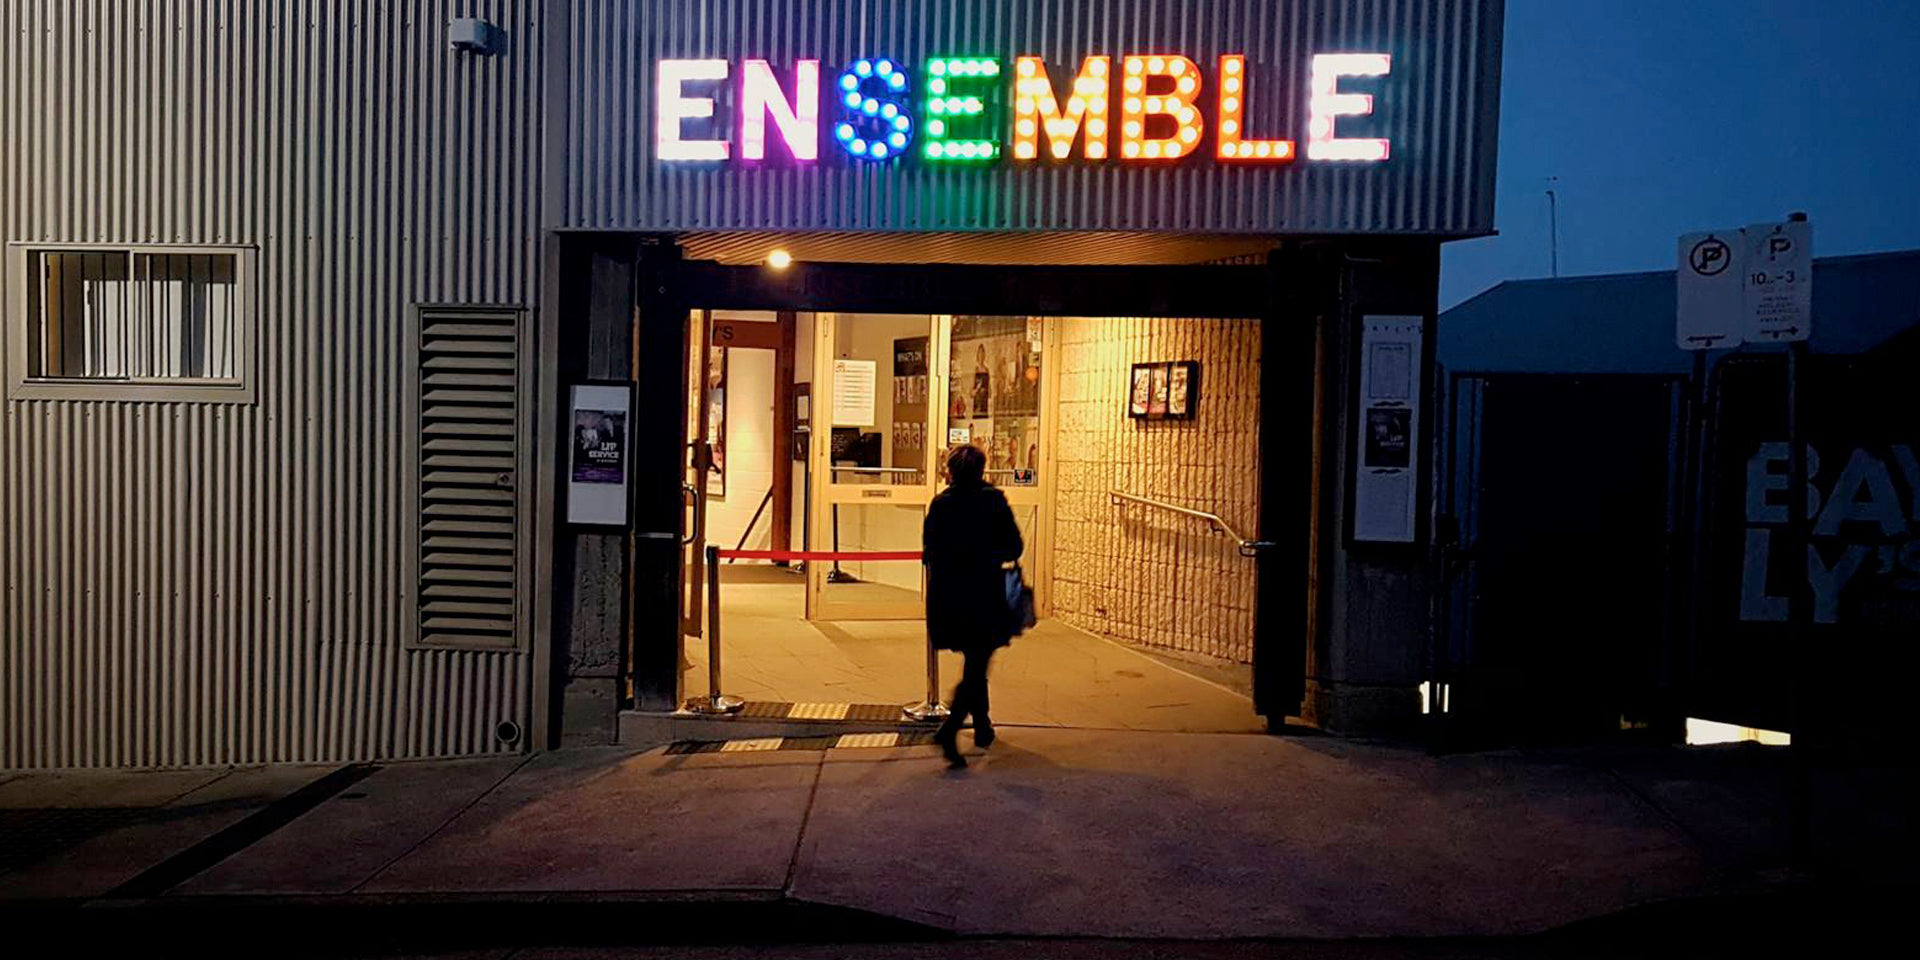 Ensemble Theatre Sign and Entry